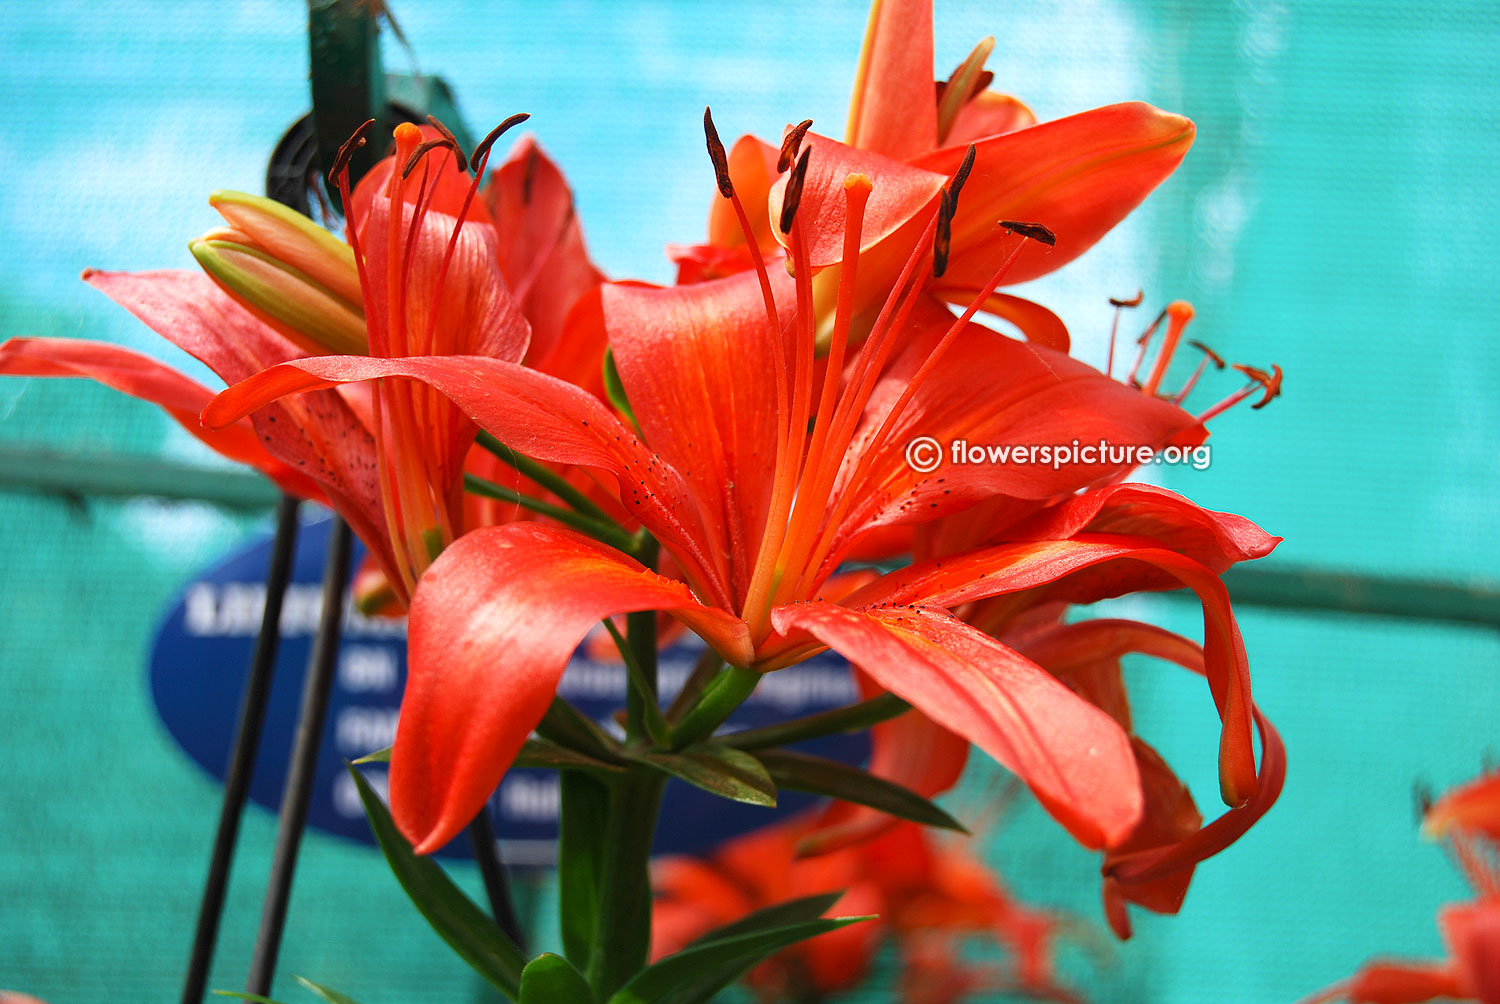 Lily Or Alstroemeria Flower Varieties